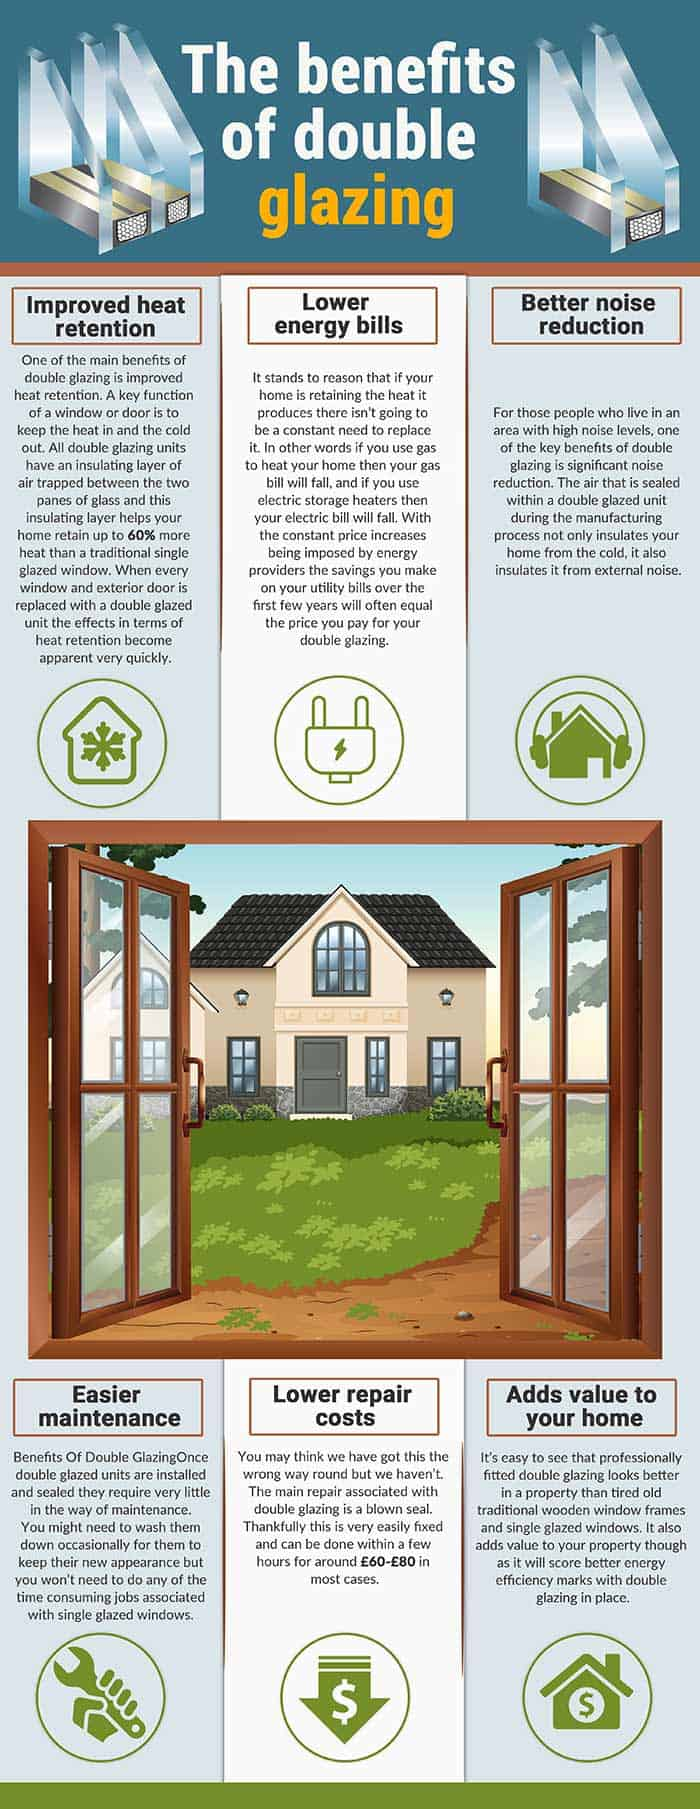 Benefits of double glazing the main benefits of double for Double glazing grants